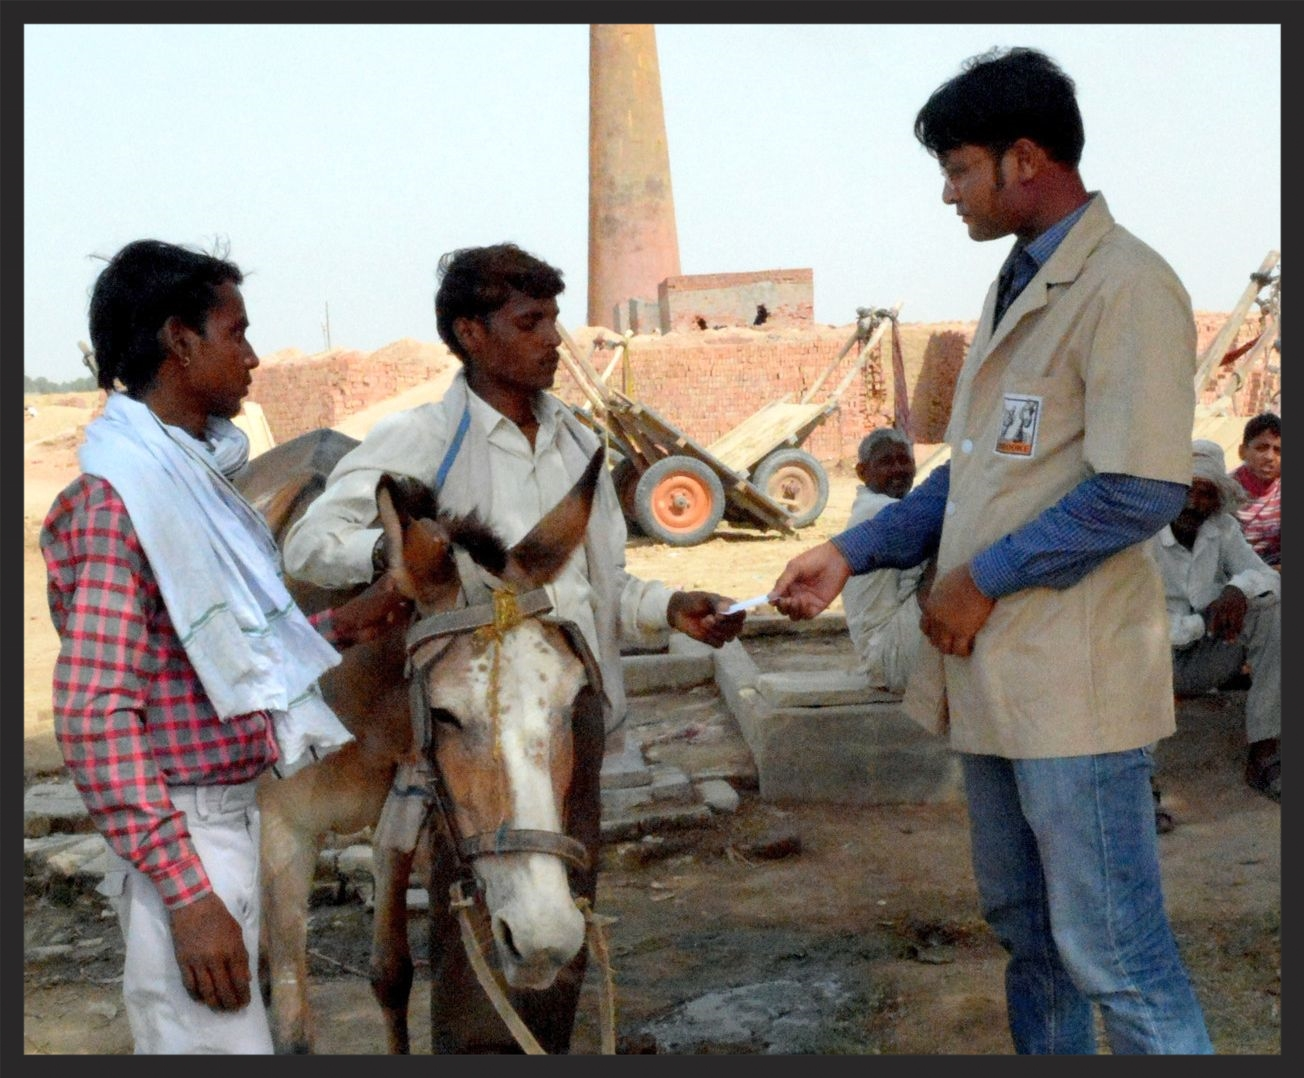 This Brooke veterinarian in India is treating a donkey and discussing her care with her owners.